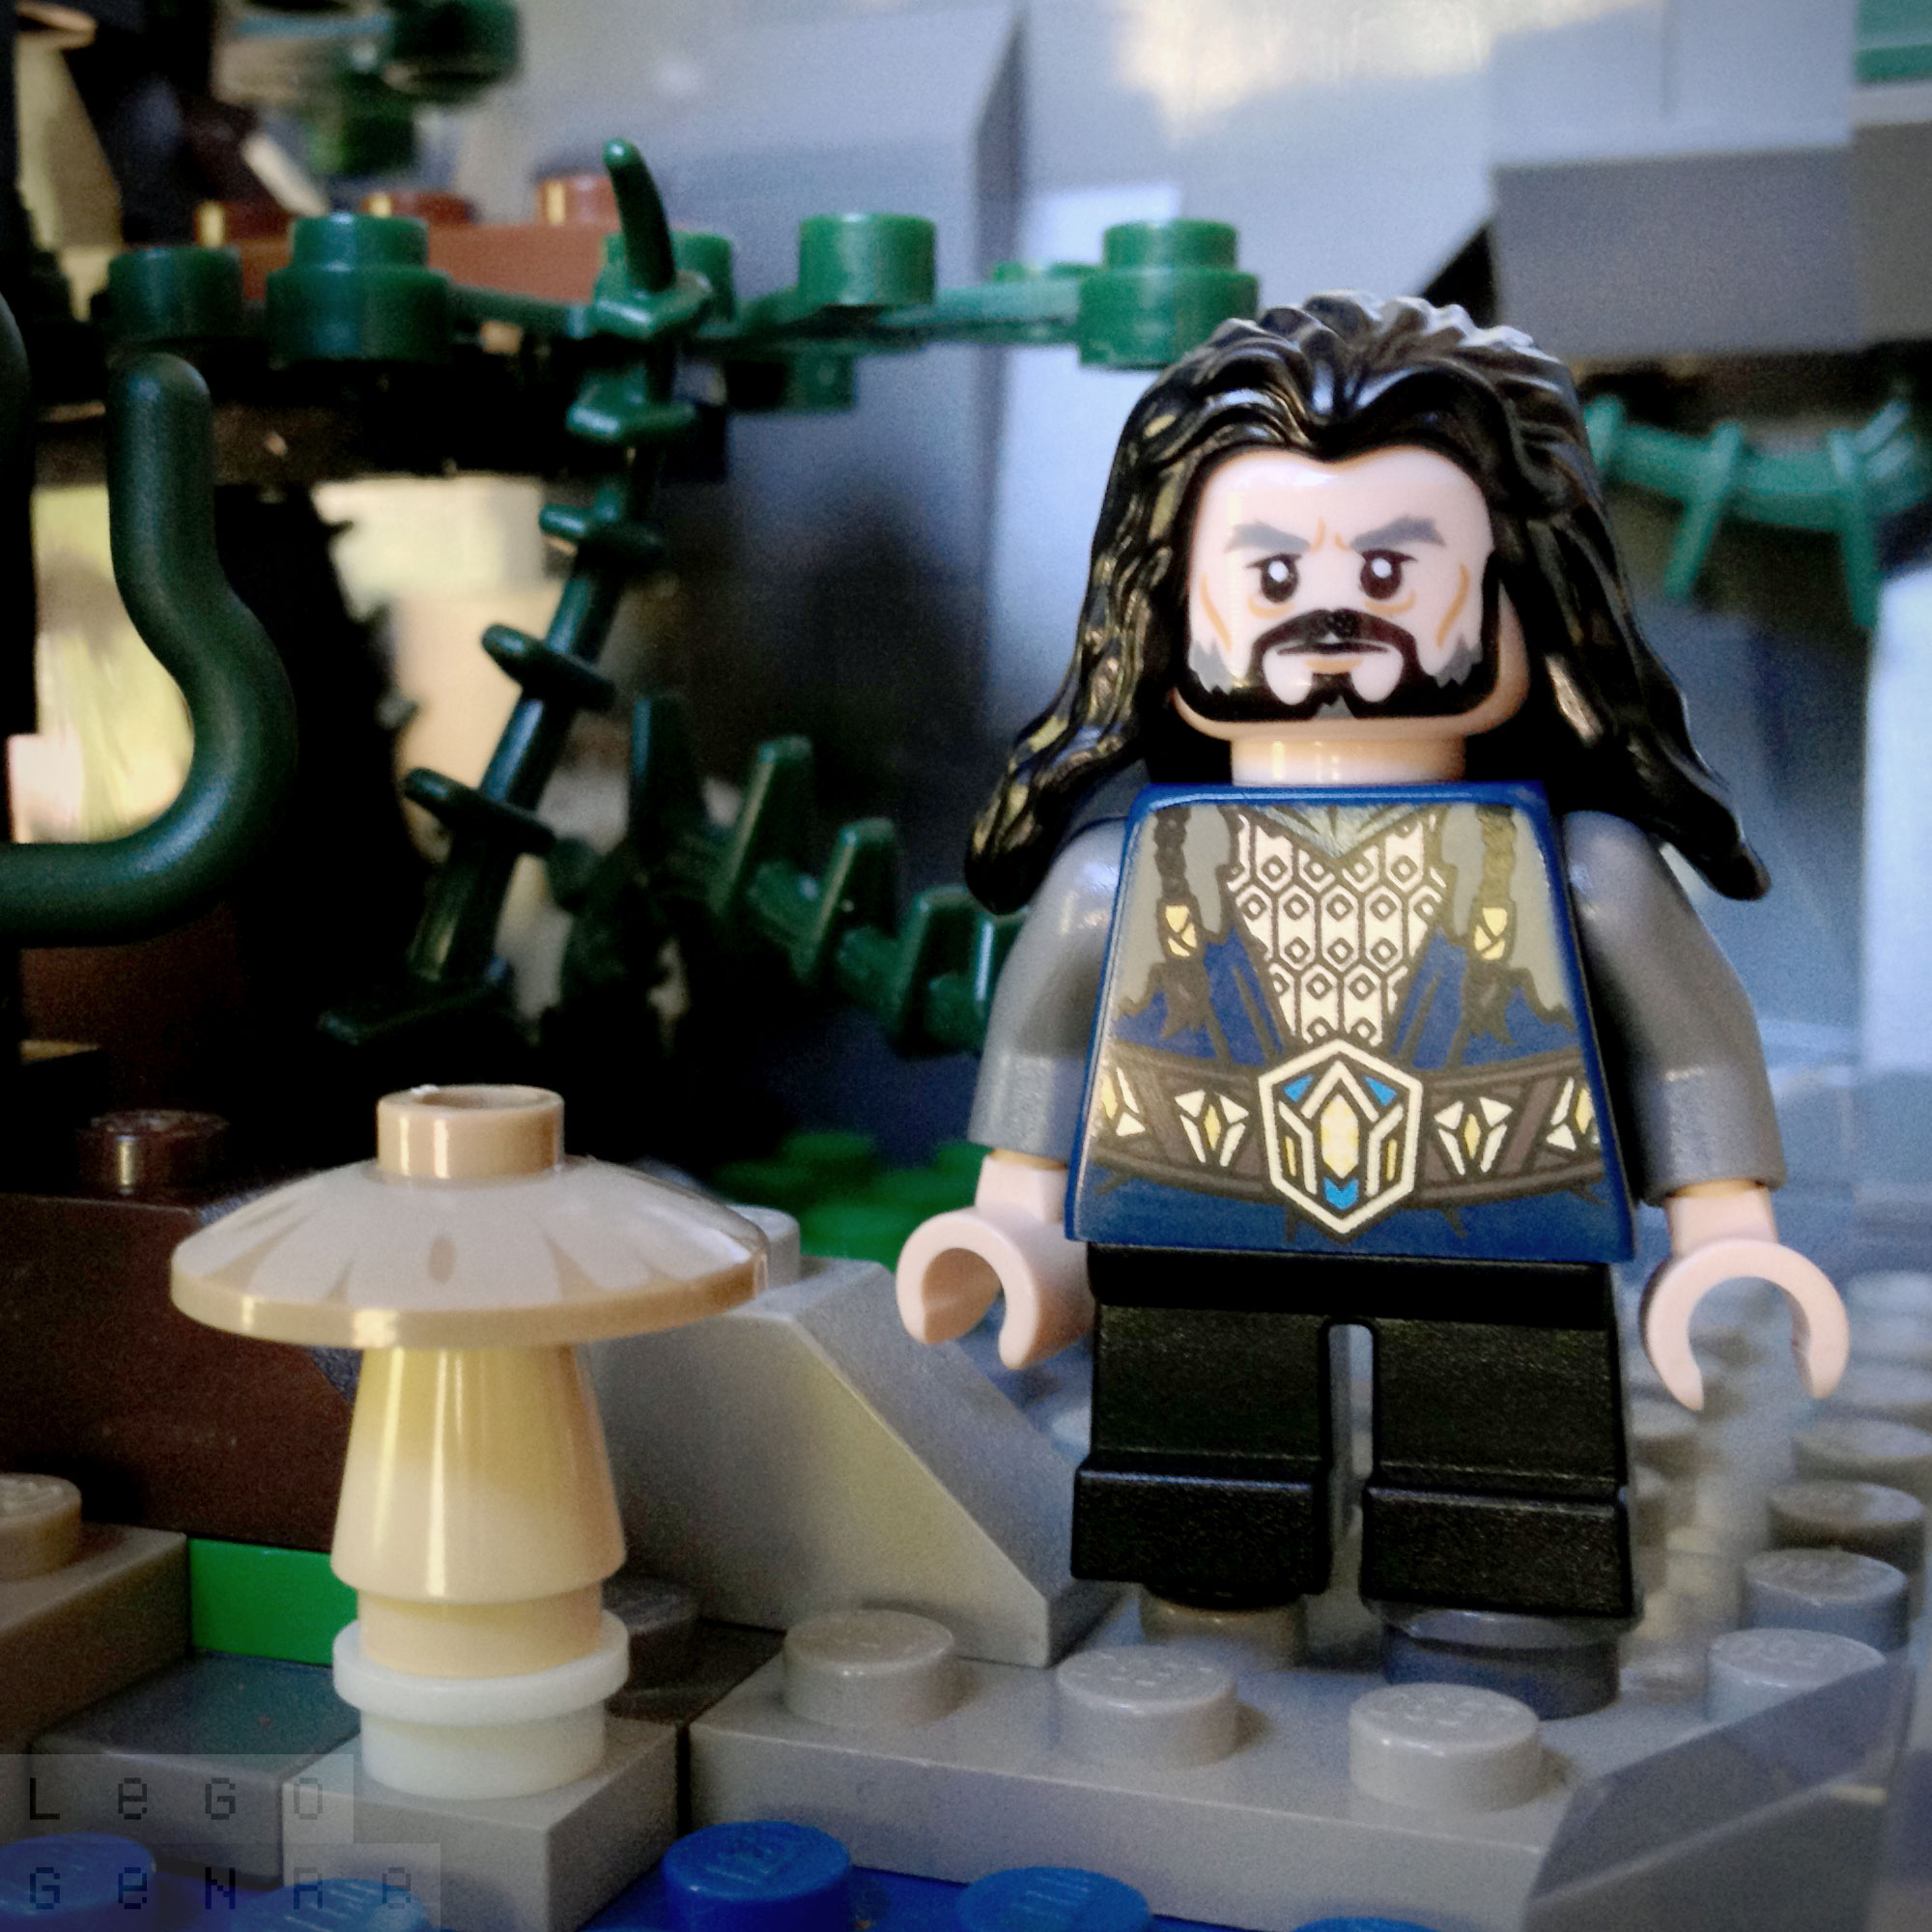 LegoGenre 00281: Thorin II Oakenshield, King Under The Mountain, & King Of Durin's Folk